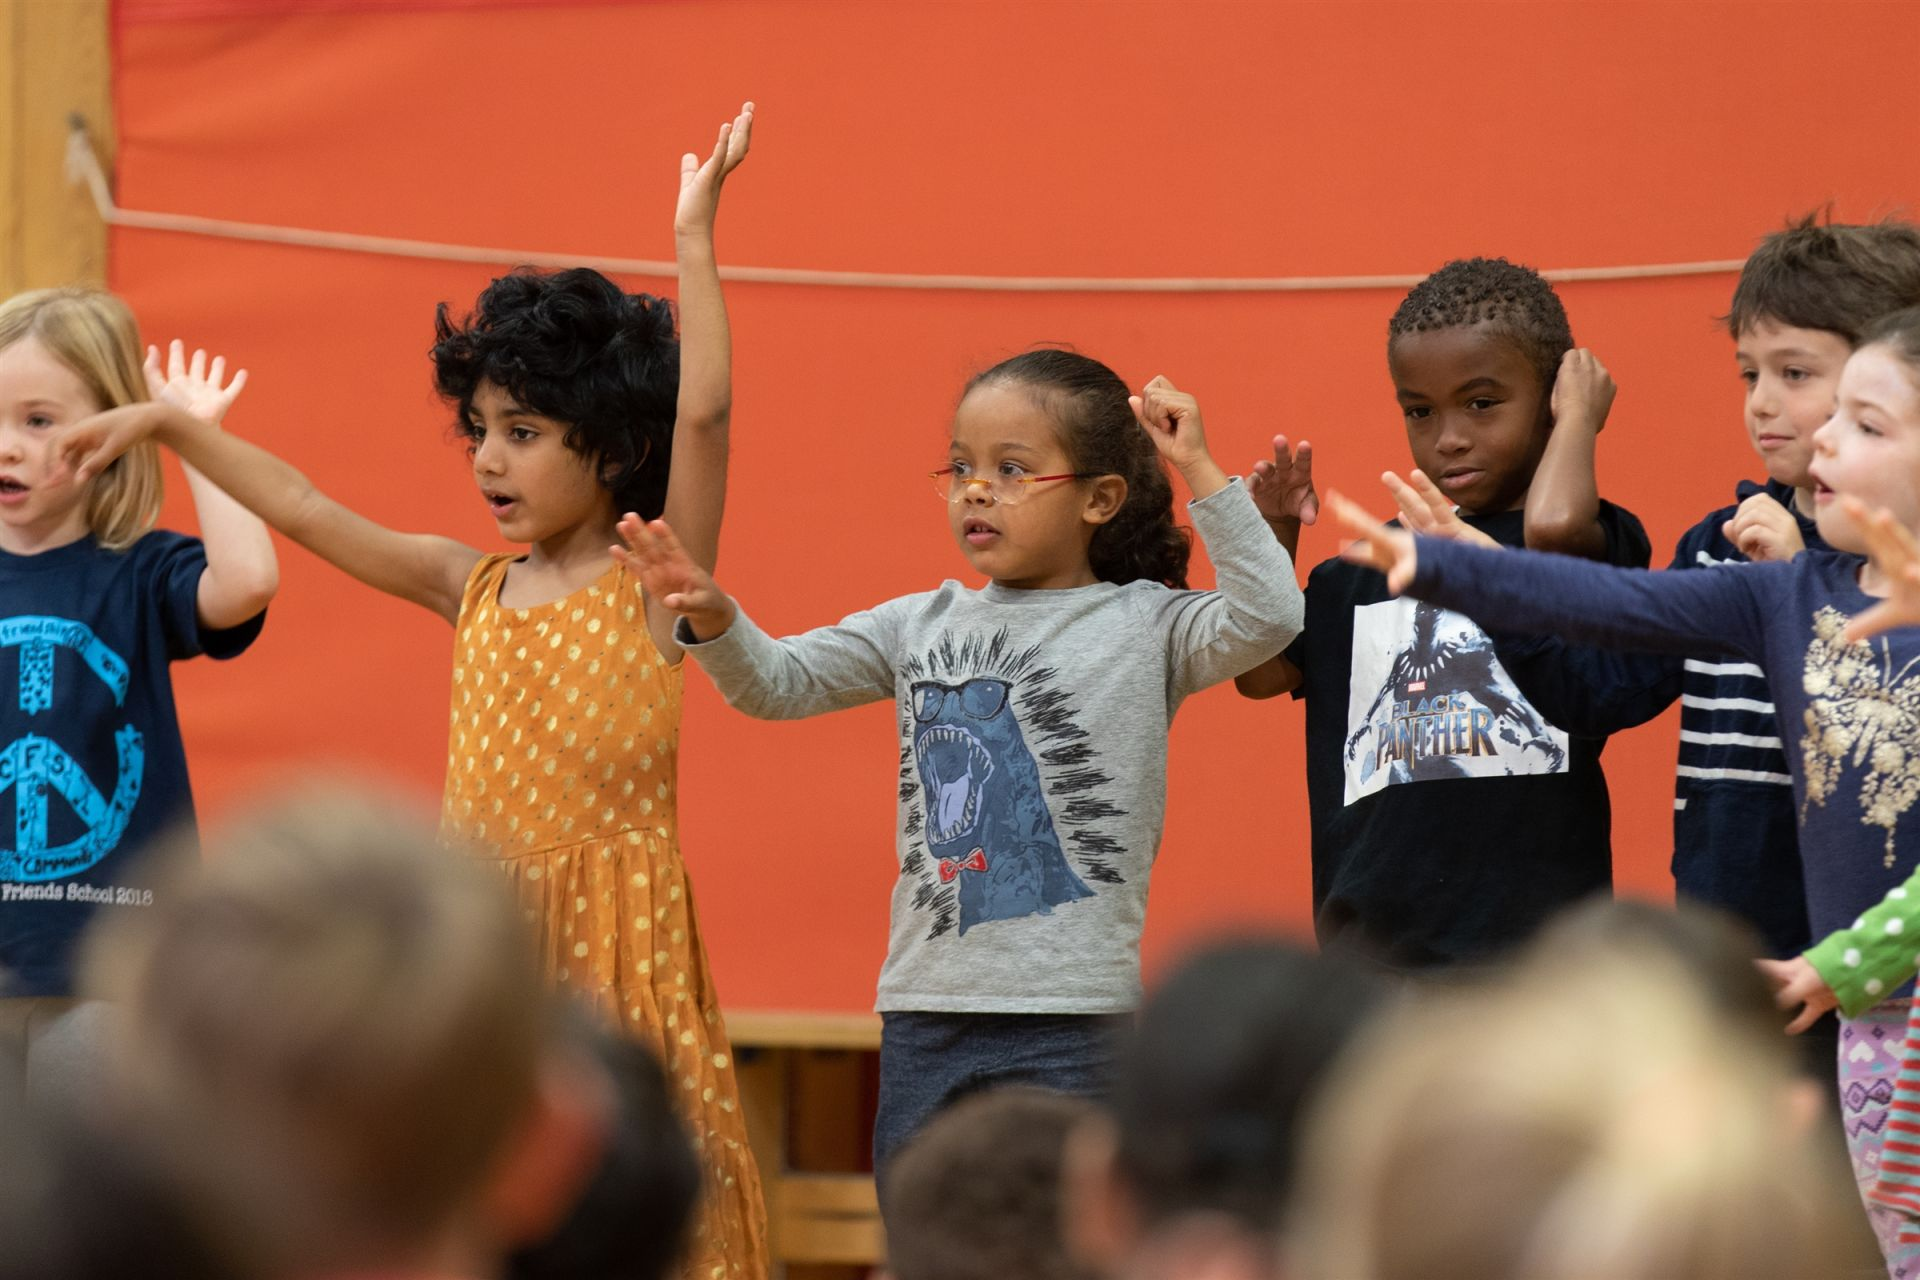 Pre-K and Kindergarten students sing a song with arm motions for the Significant Elders Day assembly.